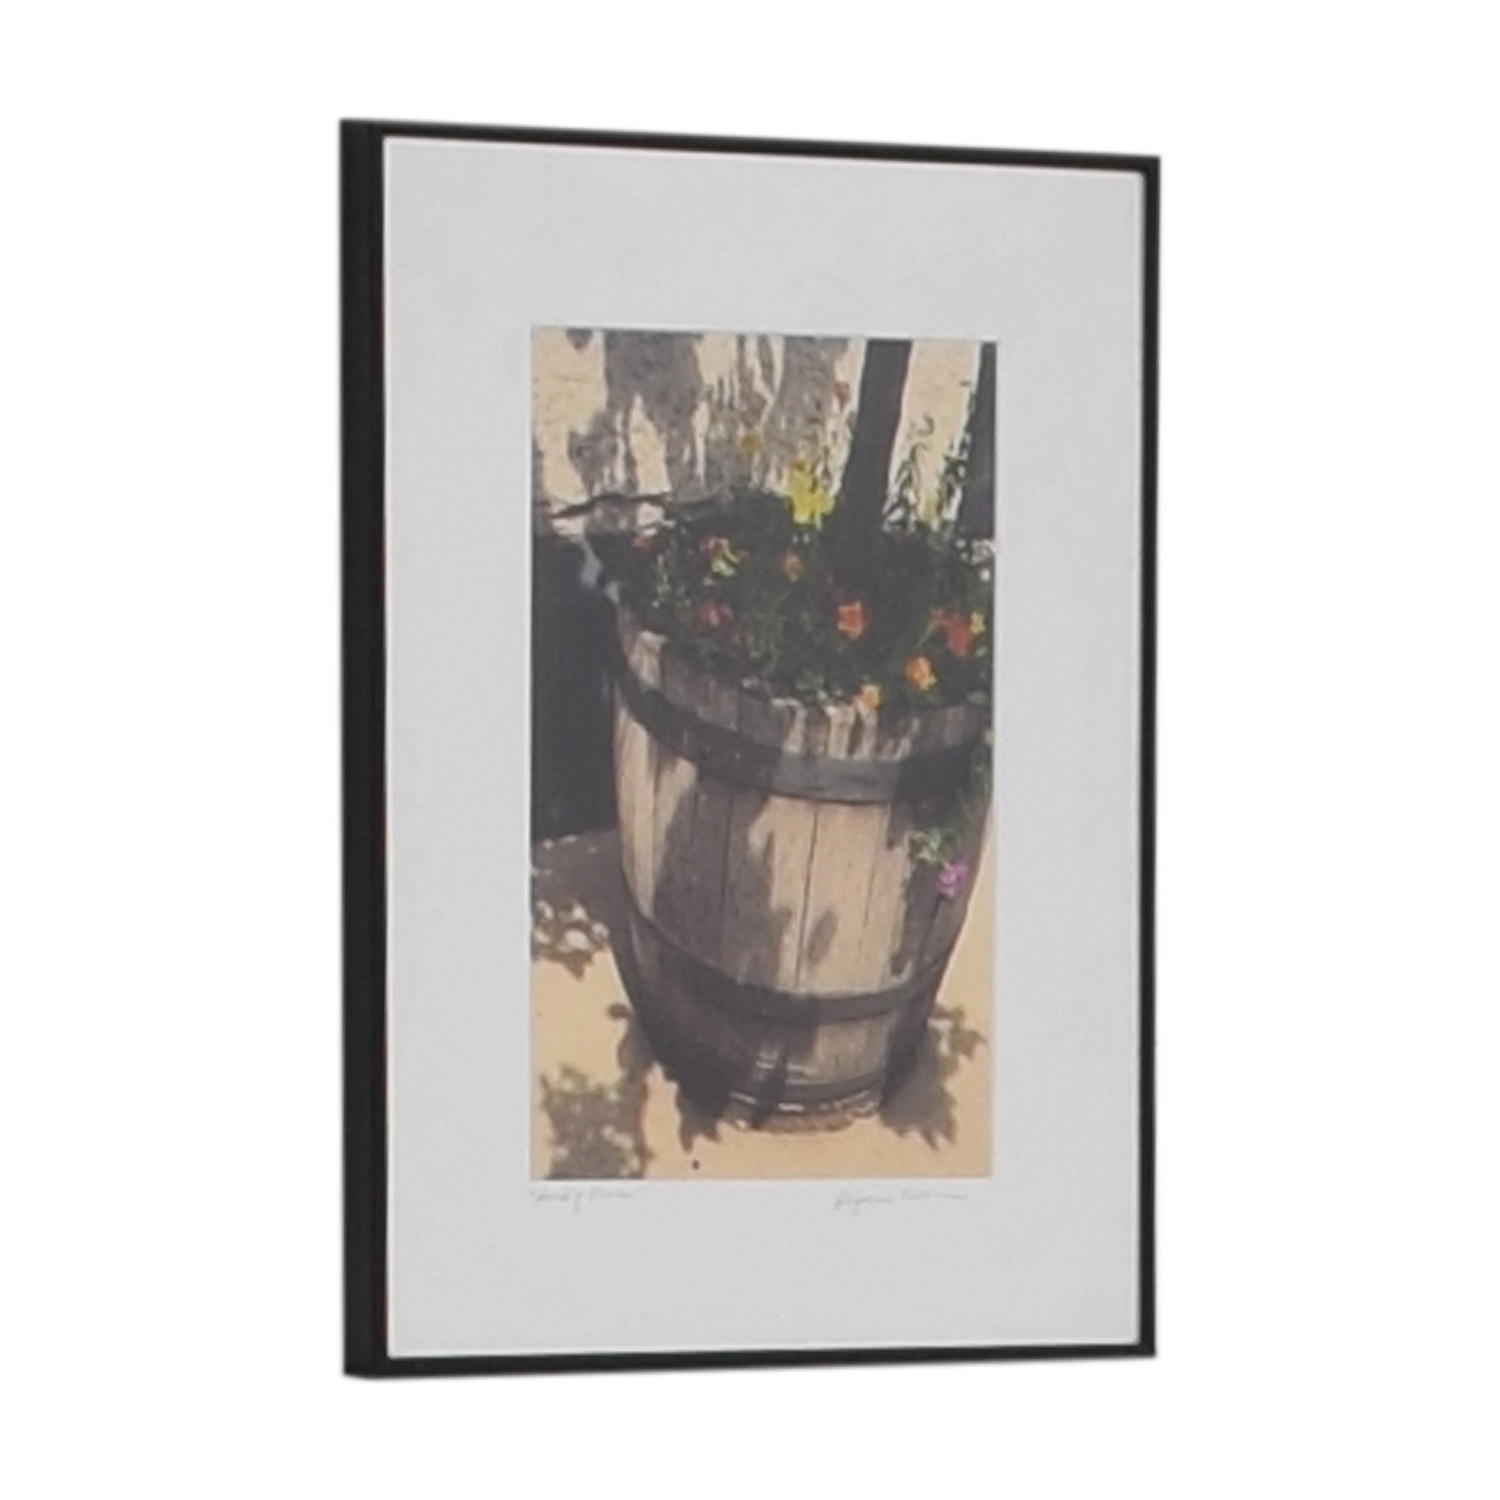 Stephanie Easton Stephanie Easton Signed Photograph of Floral Wood Barrel for sale